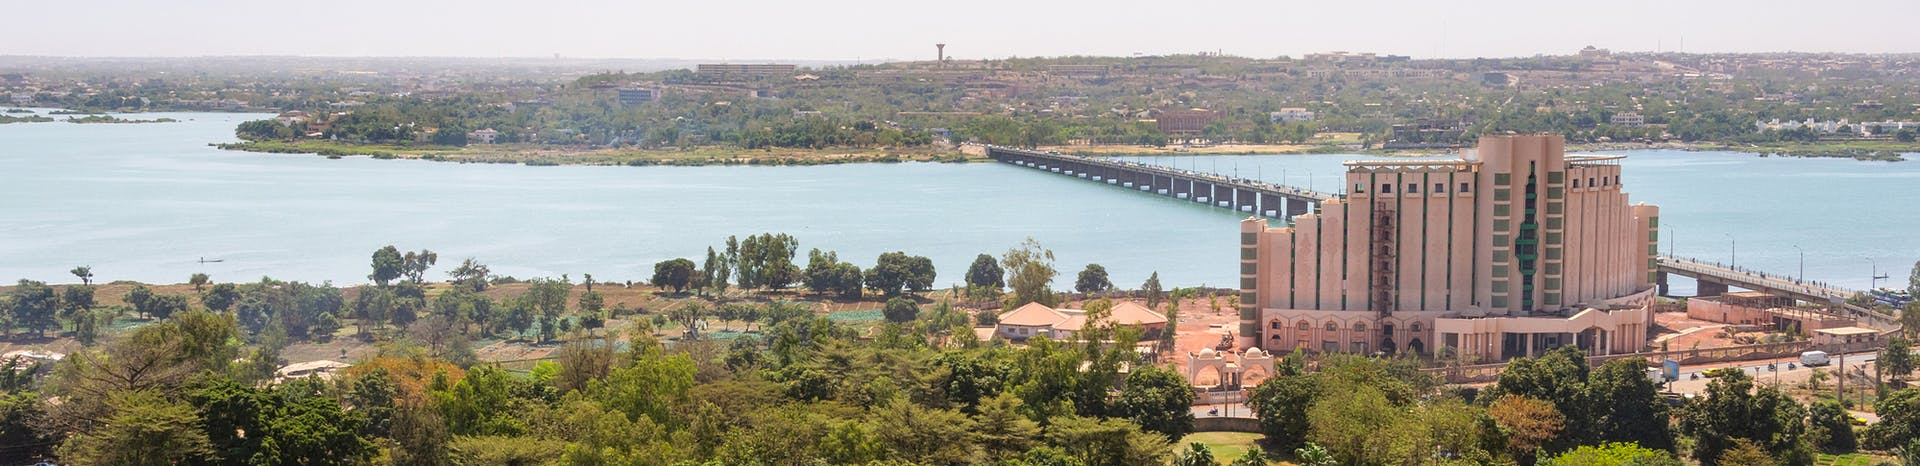 Picture of Bamako